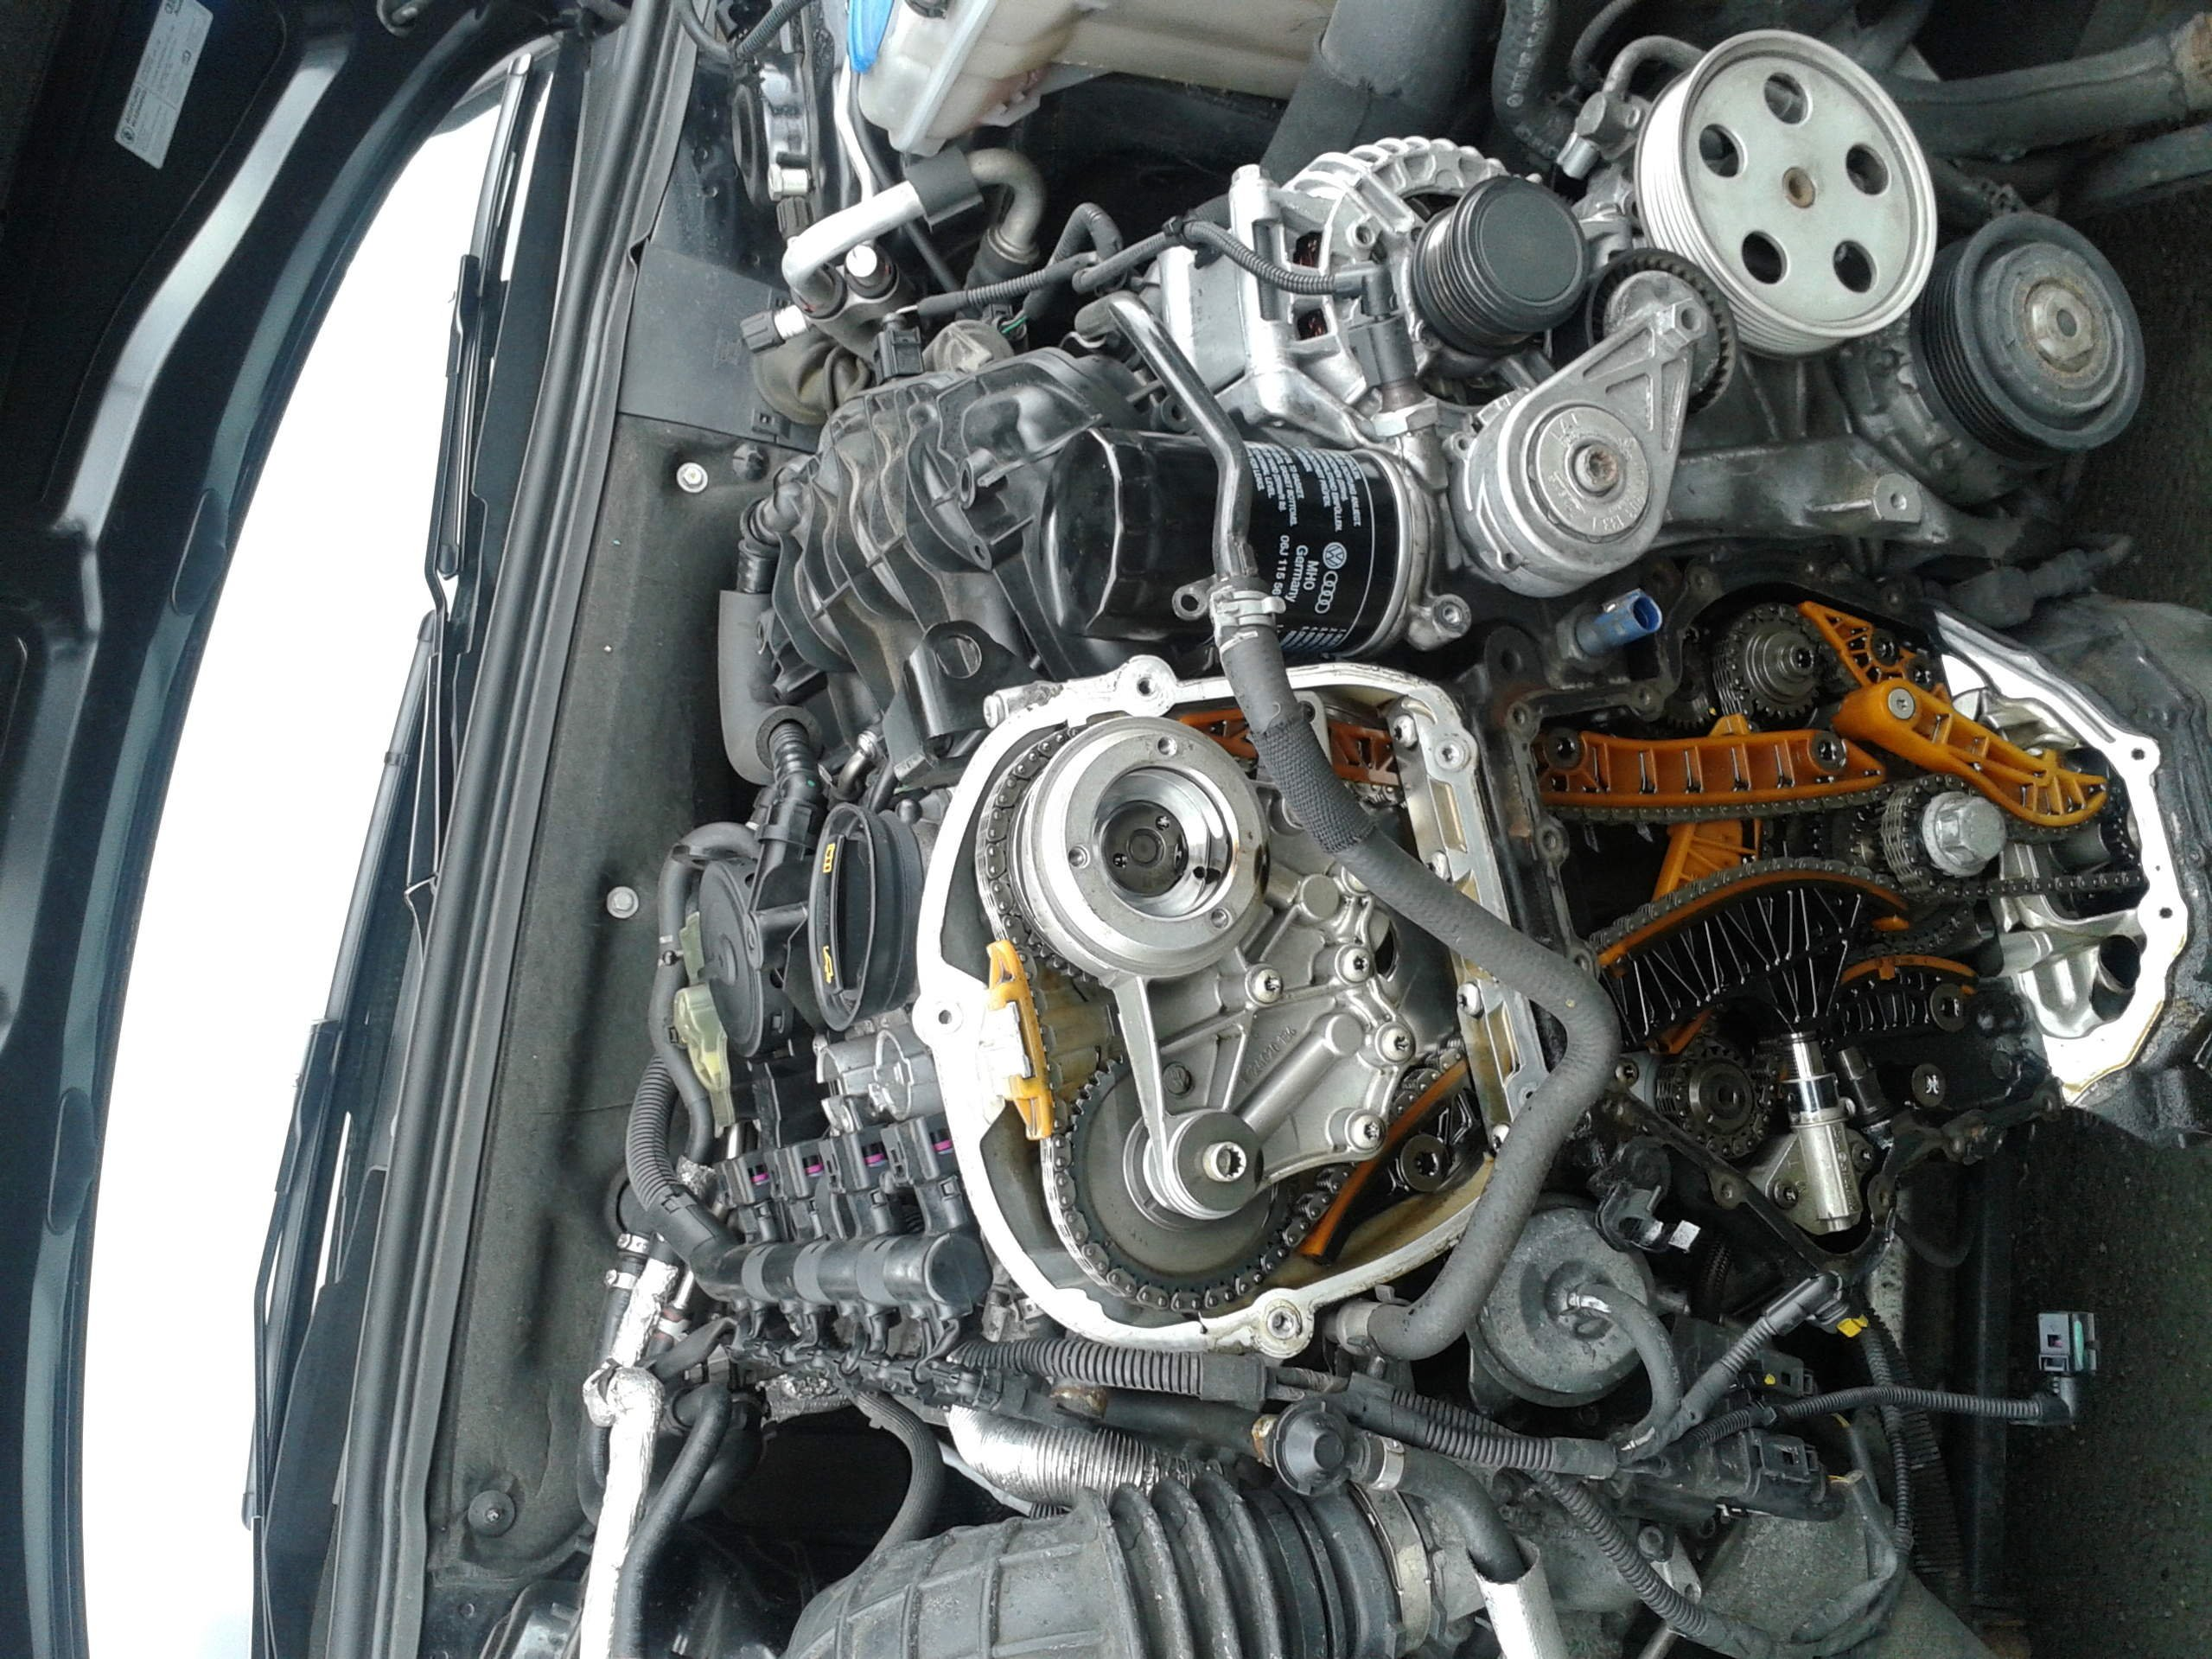 Mini R56 Timing Chain Replacement Cost >> Timing Chain Replacement Cost - 2018 - 2019 New Car Reviews by Language Kompis